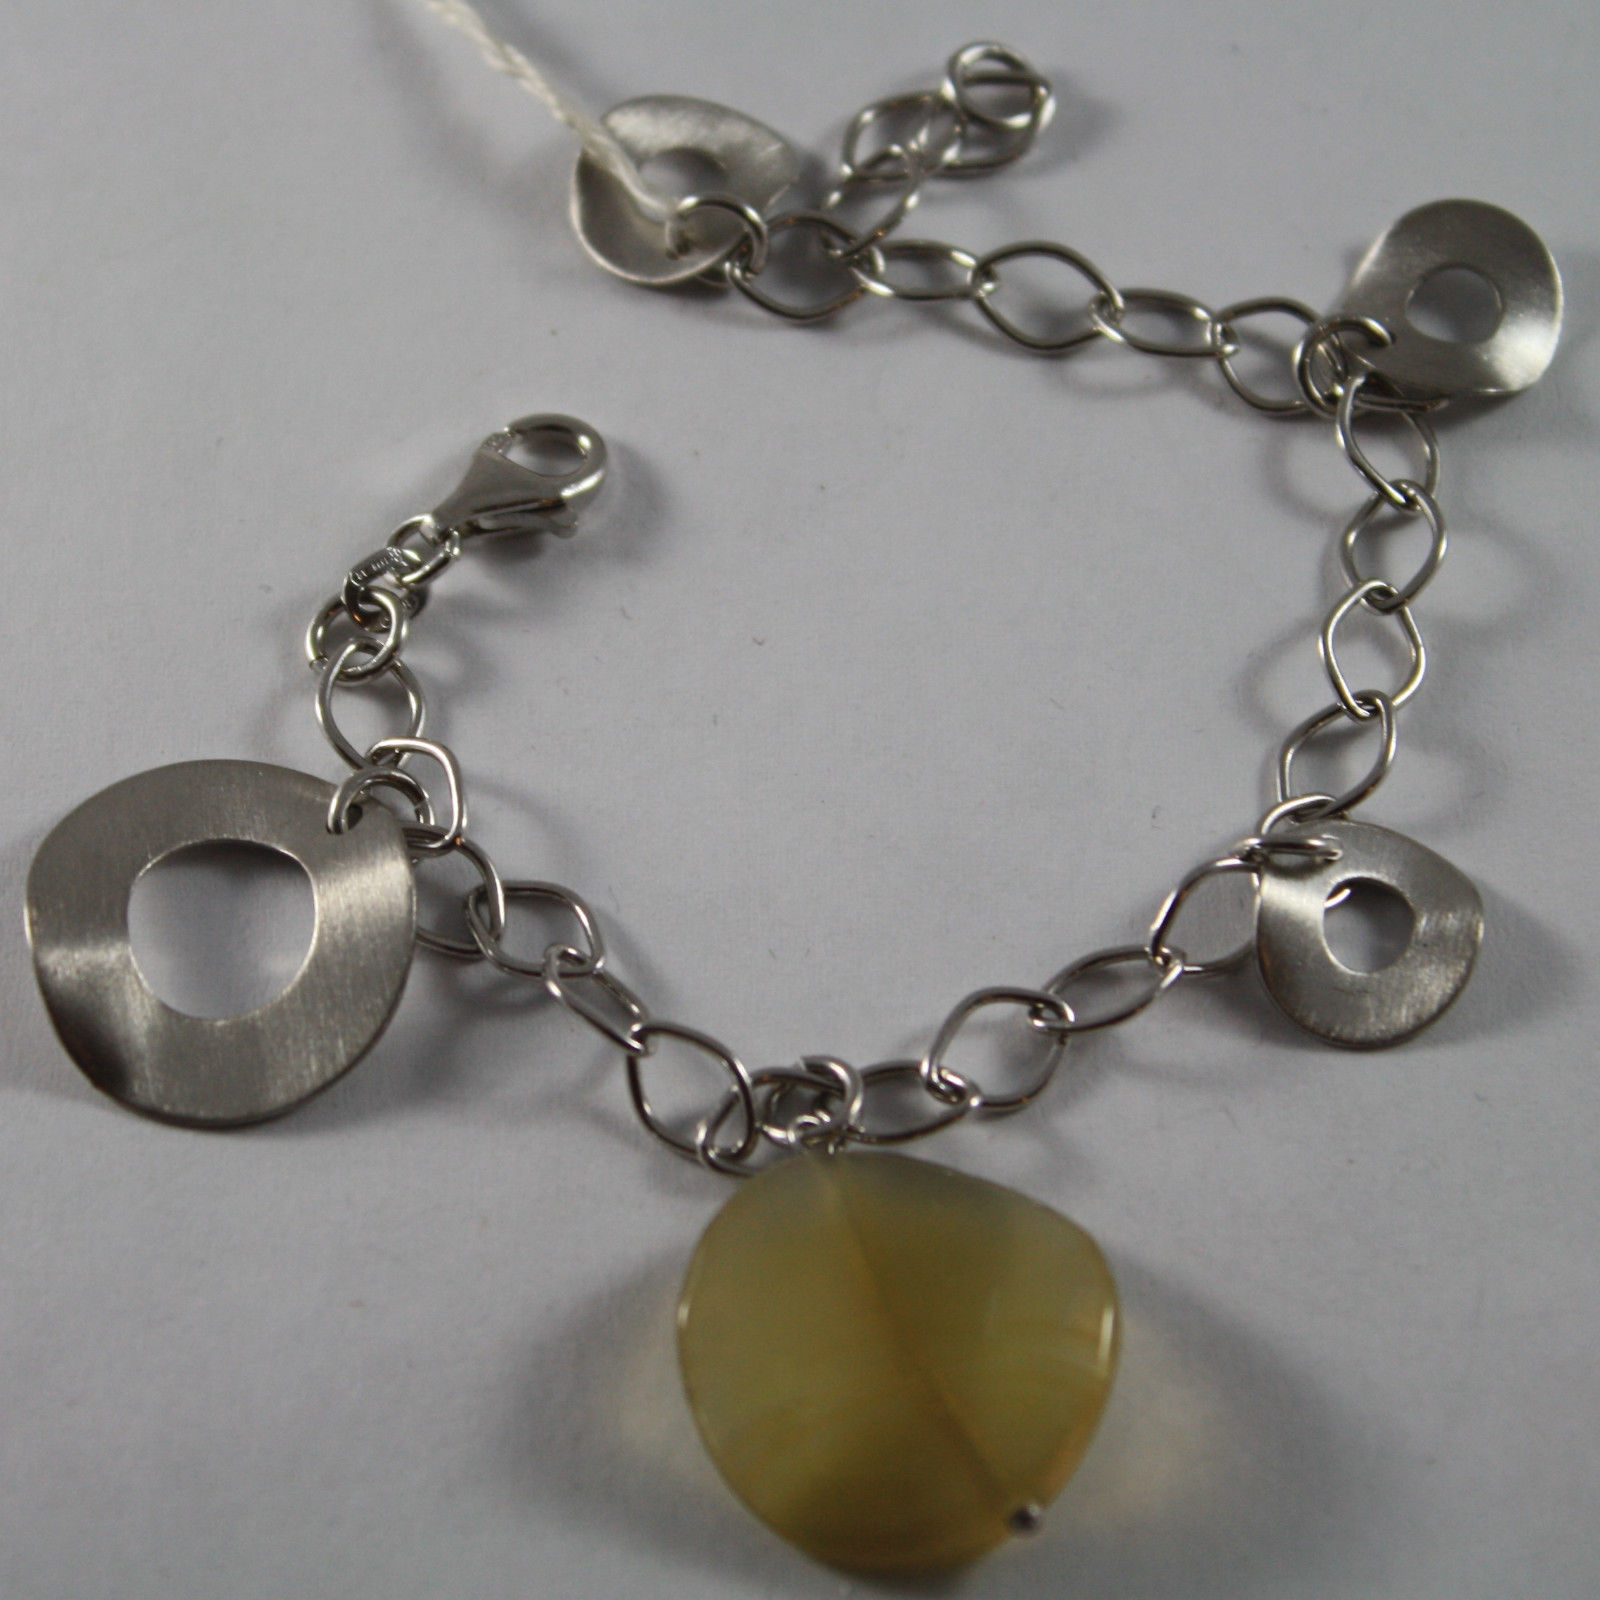 .925 RHODIUM SILVER BRACELET WITH CIRCLES SATIN AND YELLOW QUARTZ